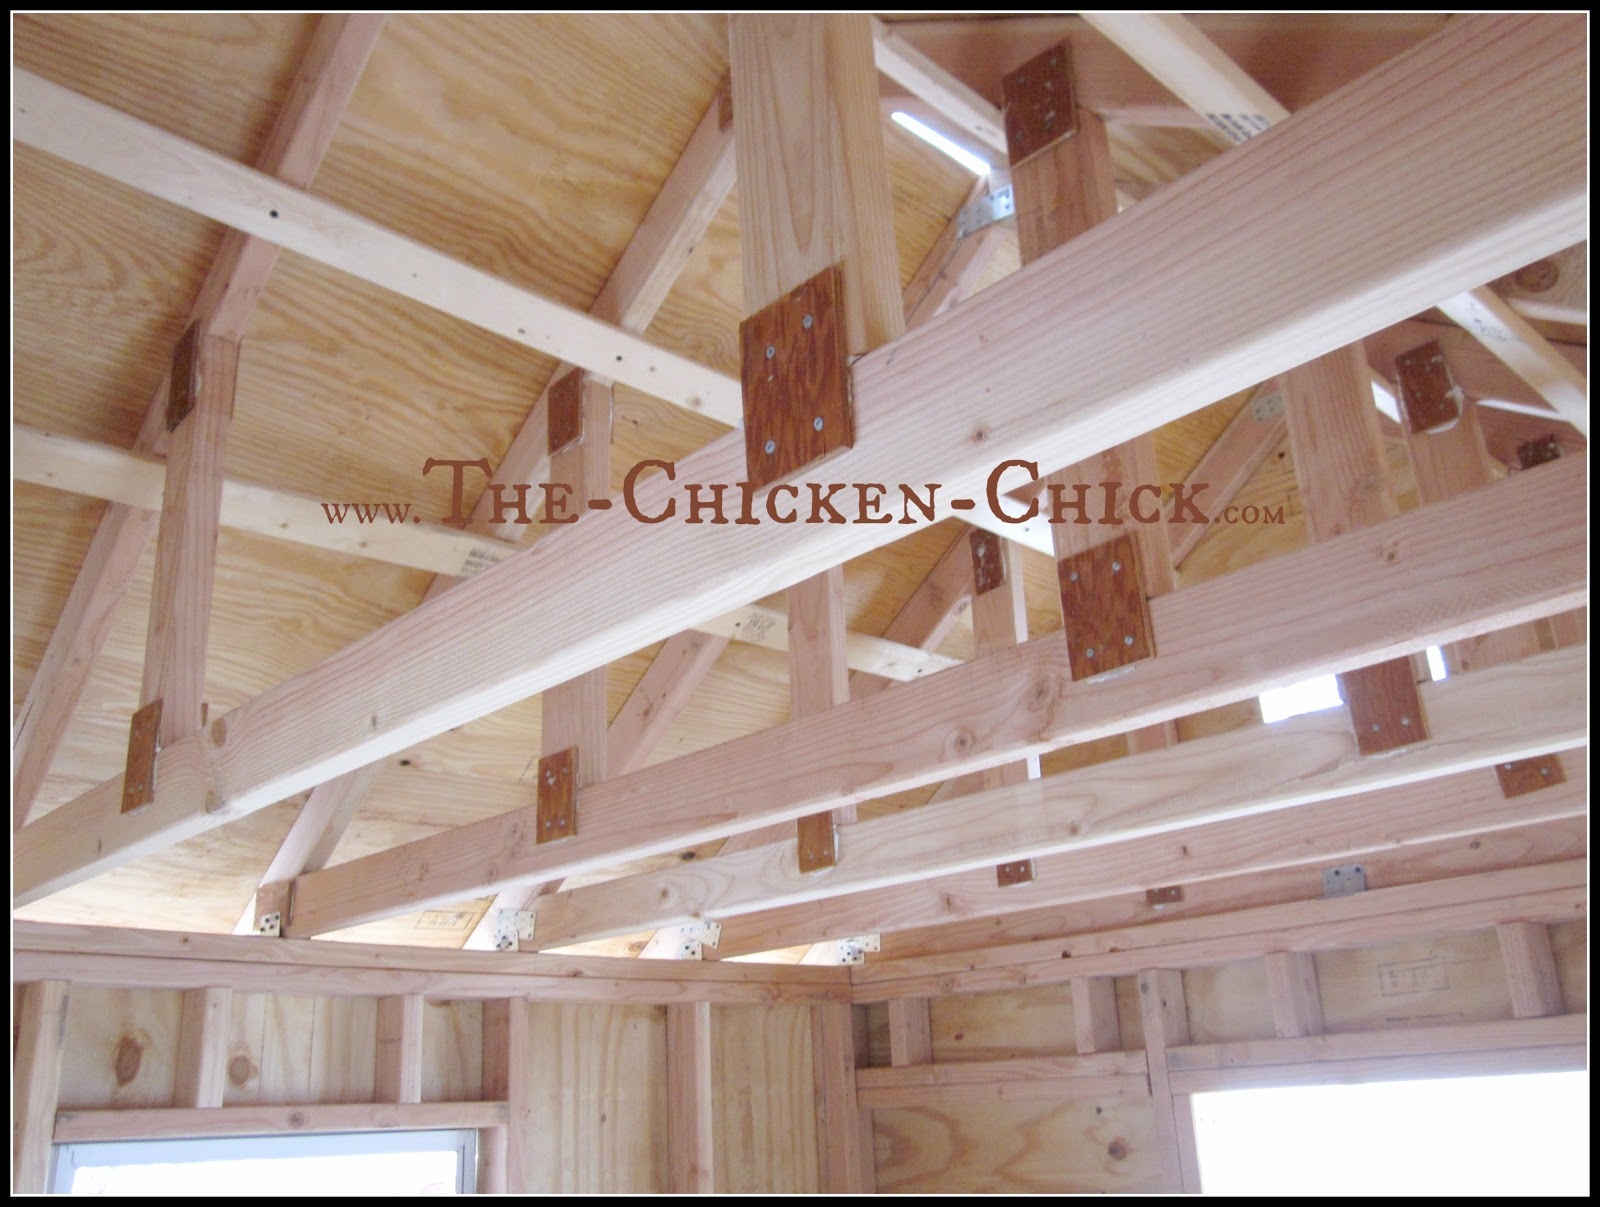 Placing windows on all four sides of the coop with open gables towards or air vents towards the top of the coop are best for maximizing air exchange, especially in cold weather.